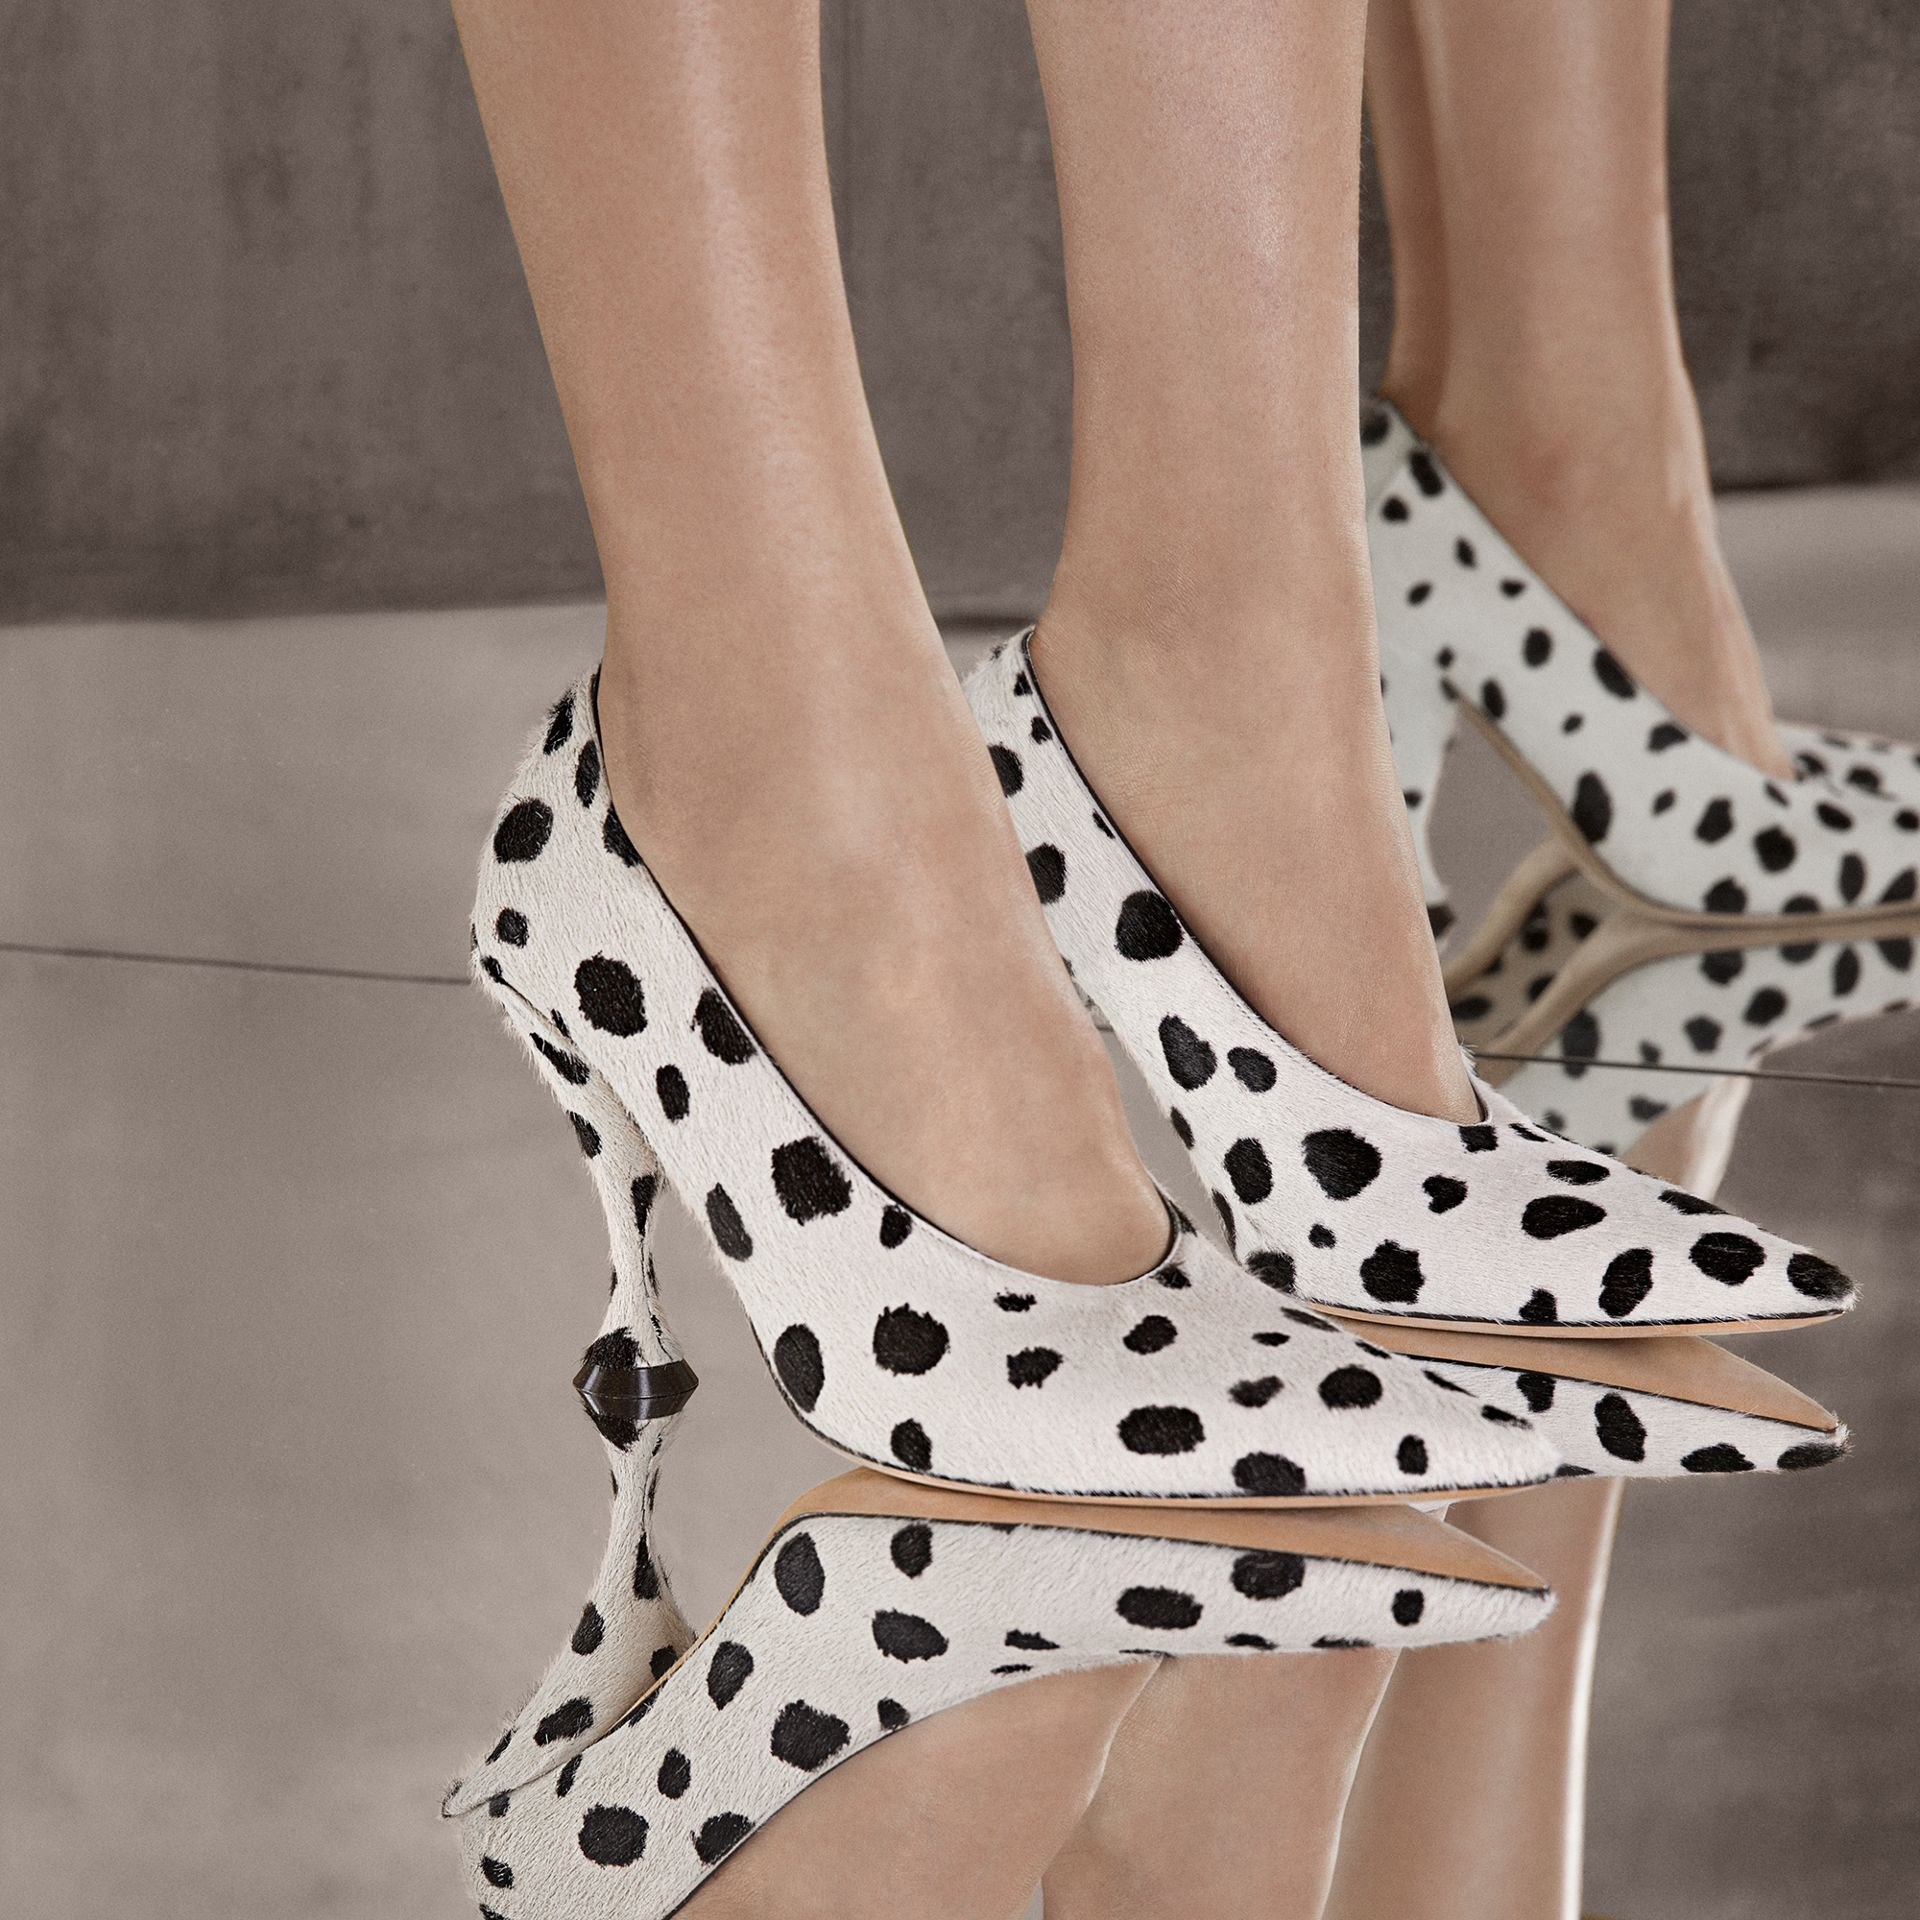 Dalmatian Print Calf Hair Pumps in Optic White/black - Women | Burberry Hong Kong S.A.R - gallery image 1